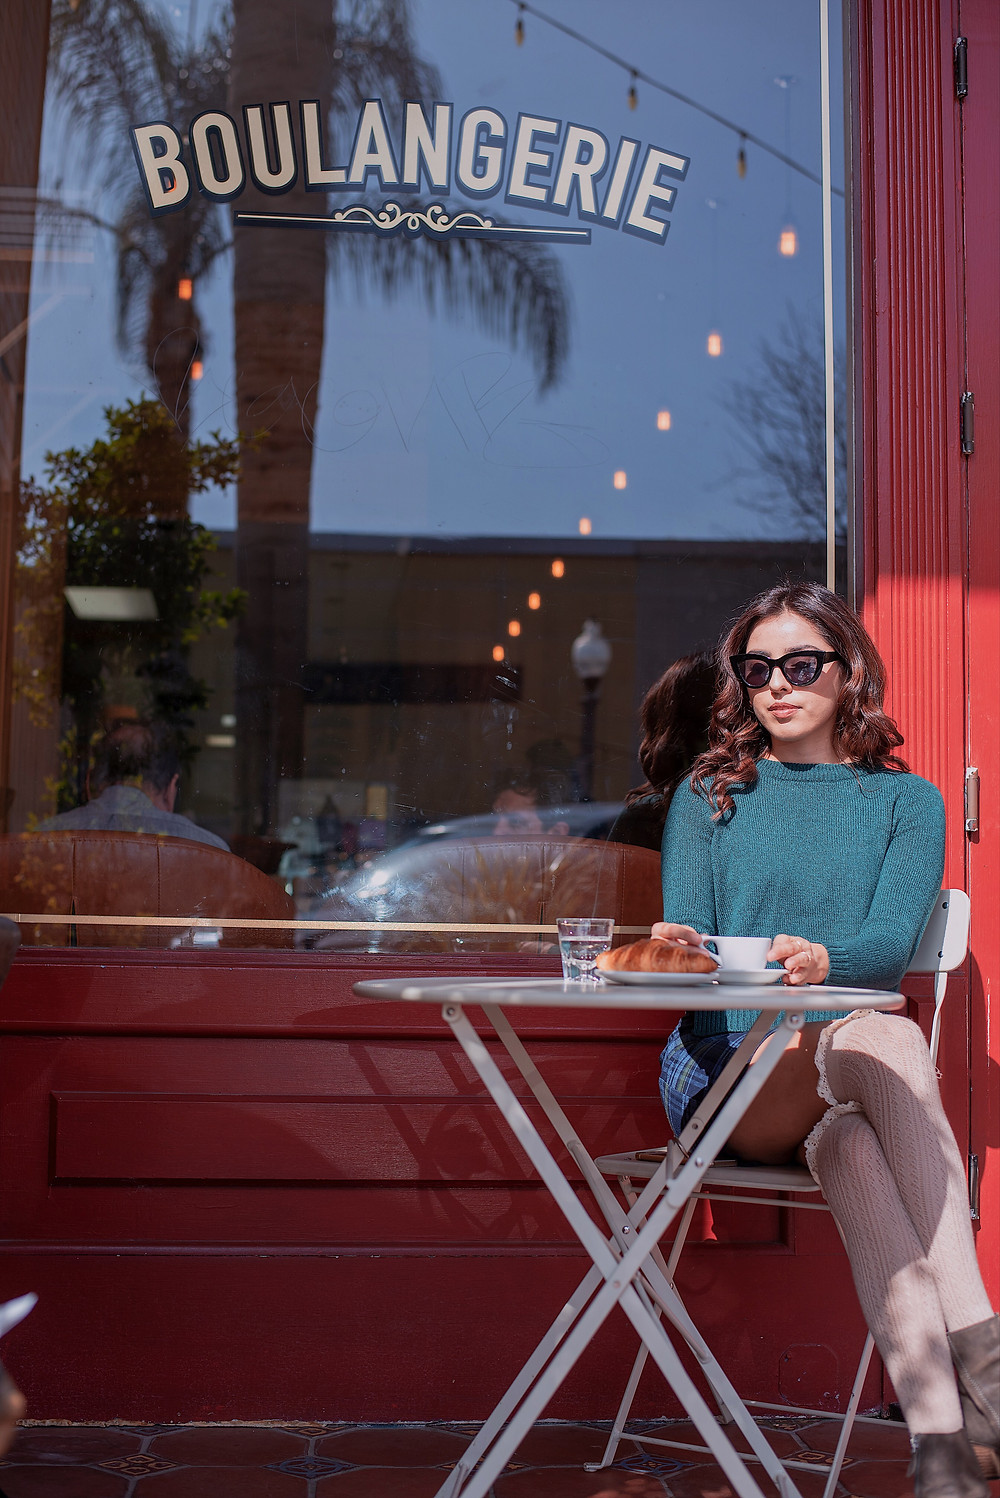 Parisian-Themed Coffee Shop Fashion Photography Beach Town Local Tourist Spot in Downtown Ventura, CA